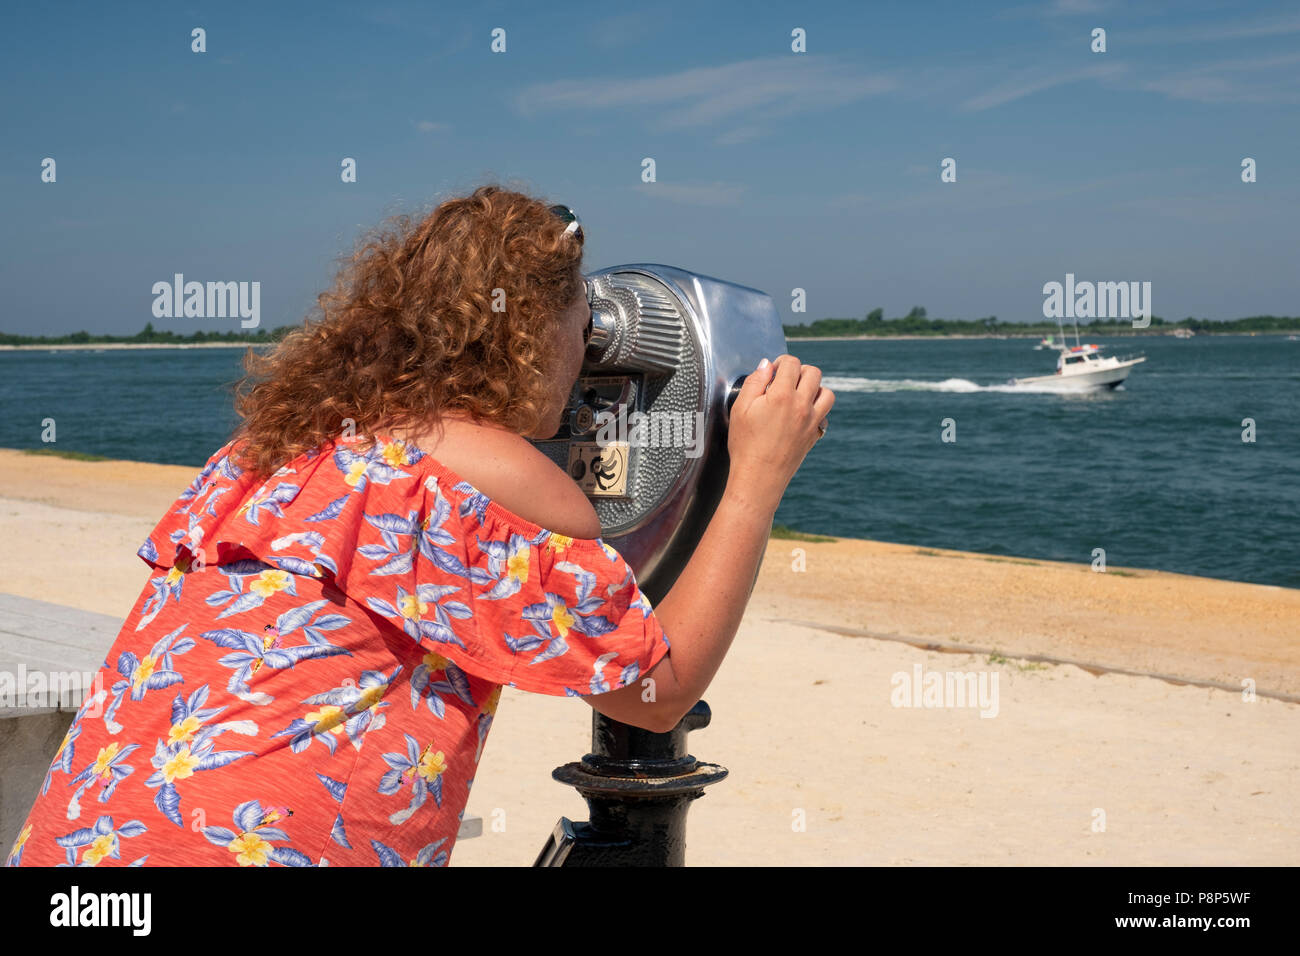 woman uses coin operated binocular to observe landscape, ocean, boats, beach scenes at the coast Stock Photo